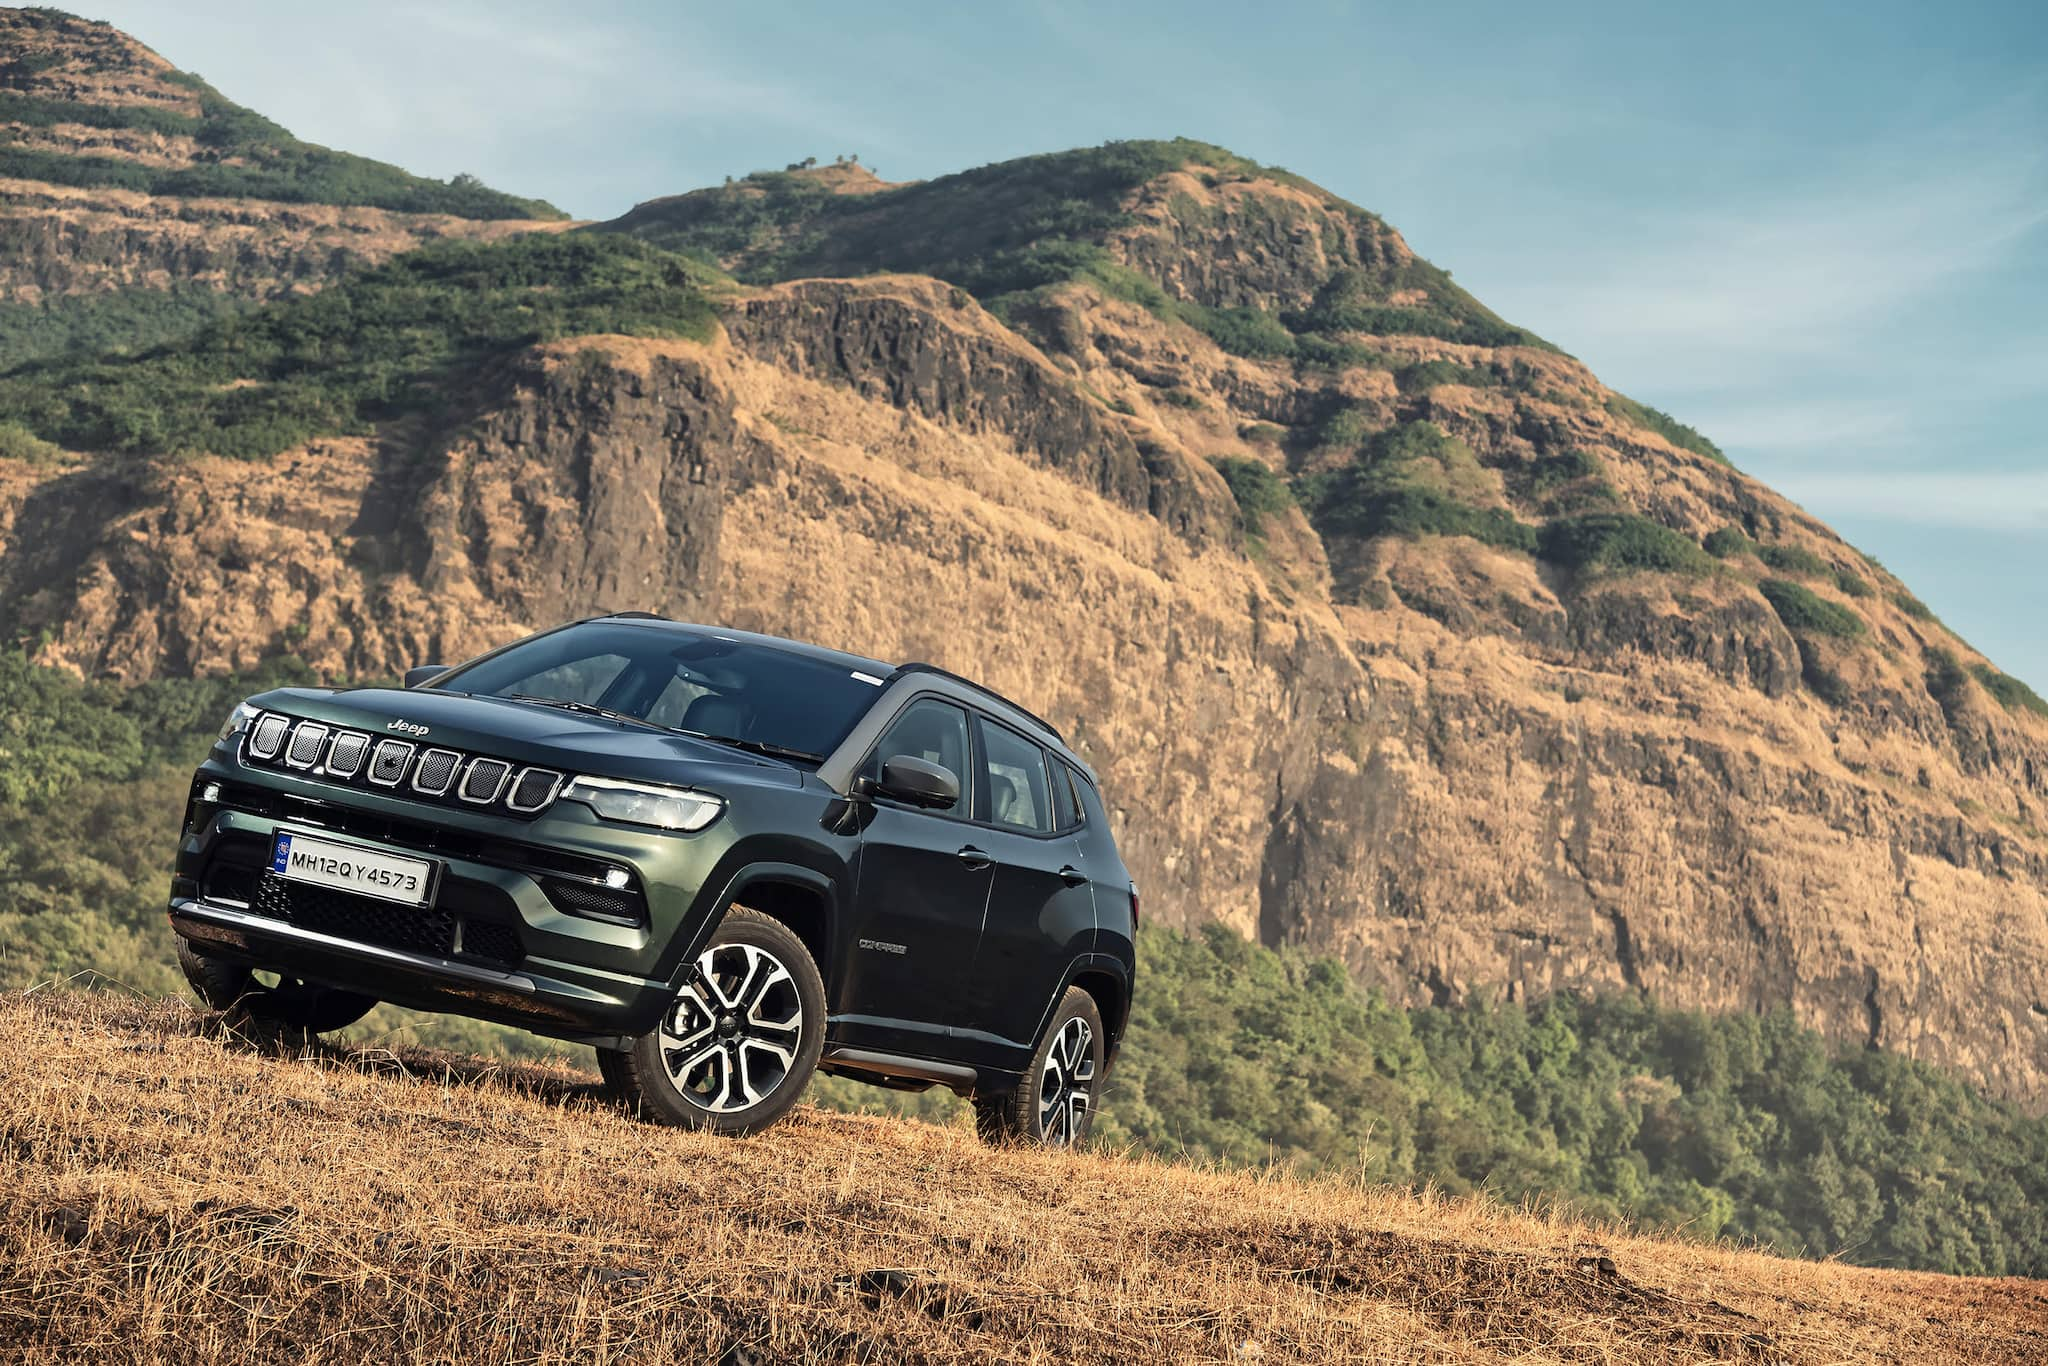 In Pics | Jeep Compass 2021 interiors, off-road capability and other features